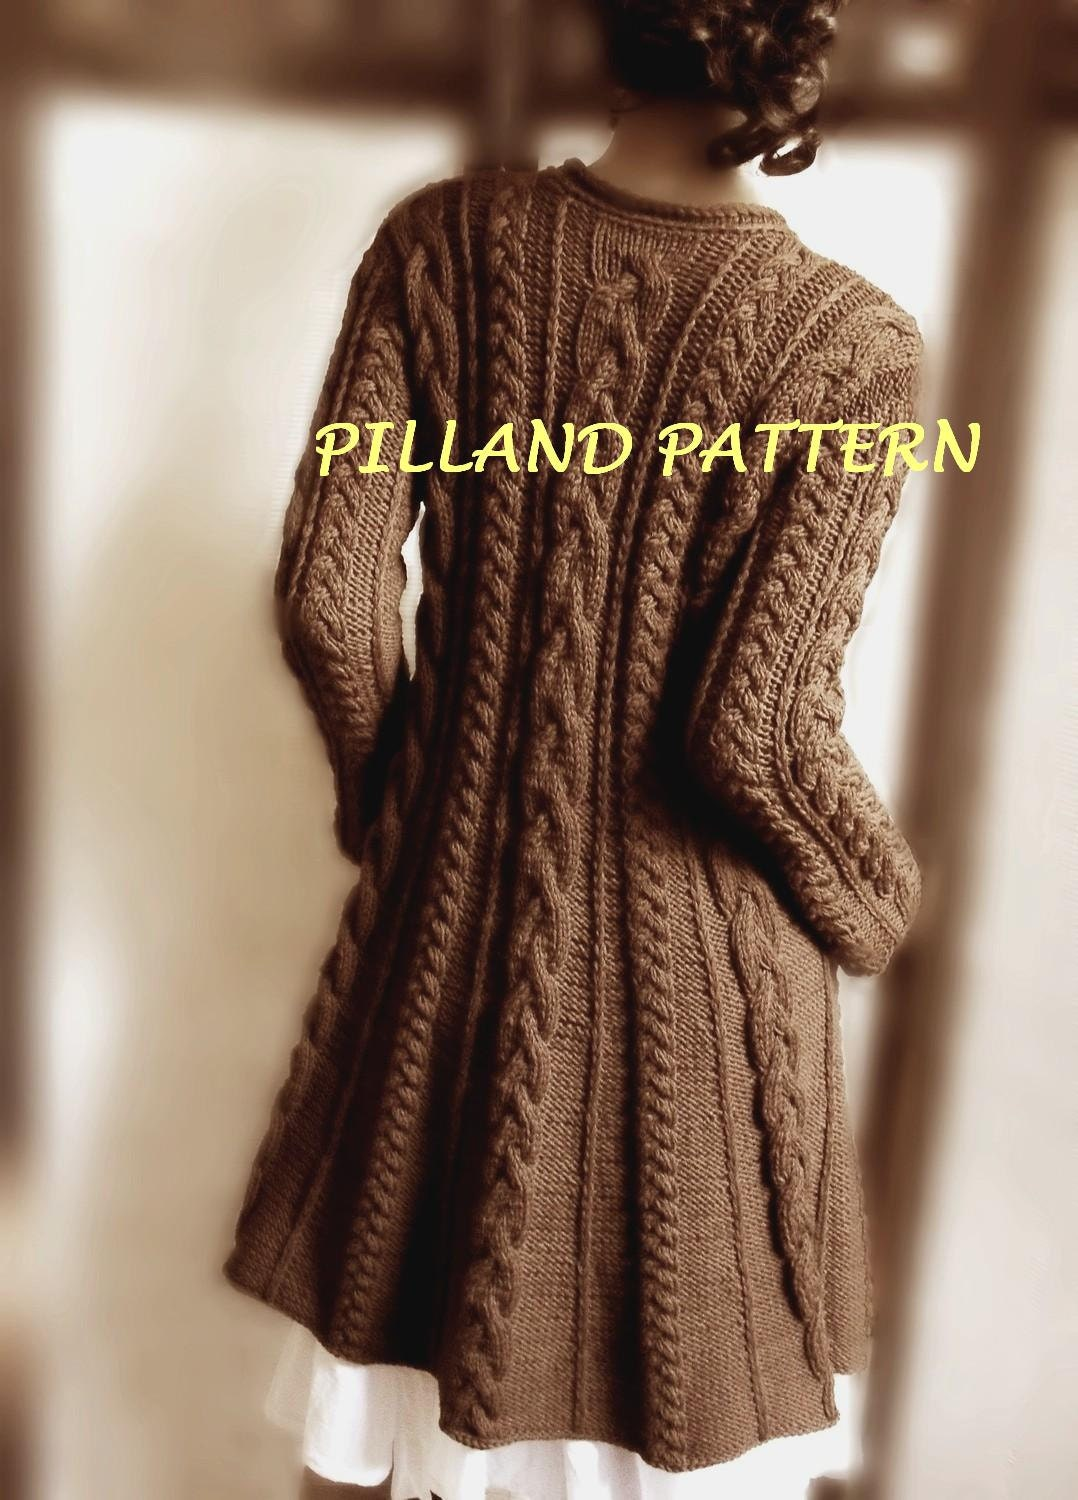 Knitting Patterns For Cardigan Sweaters : Cable Knit Coat Sweater Knitting Pattern Aran knit coat PDF